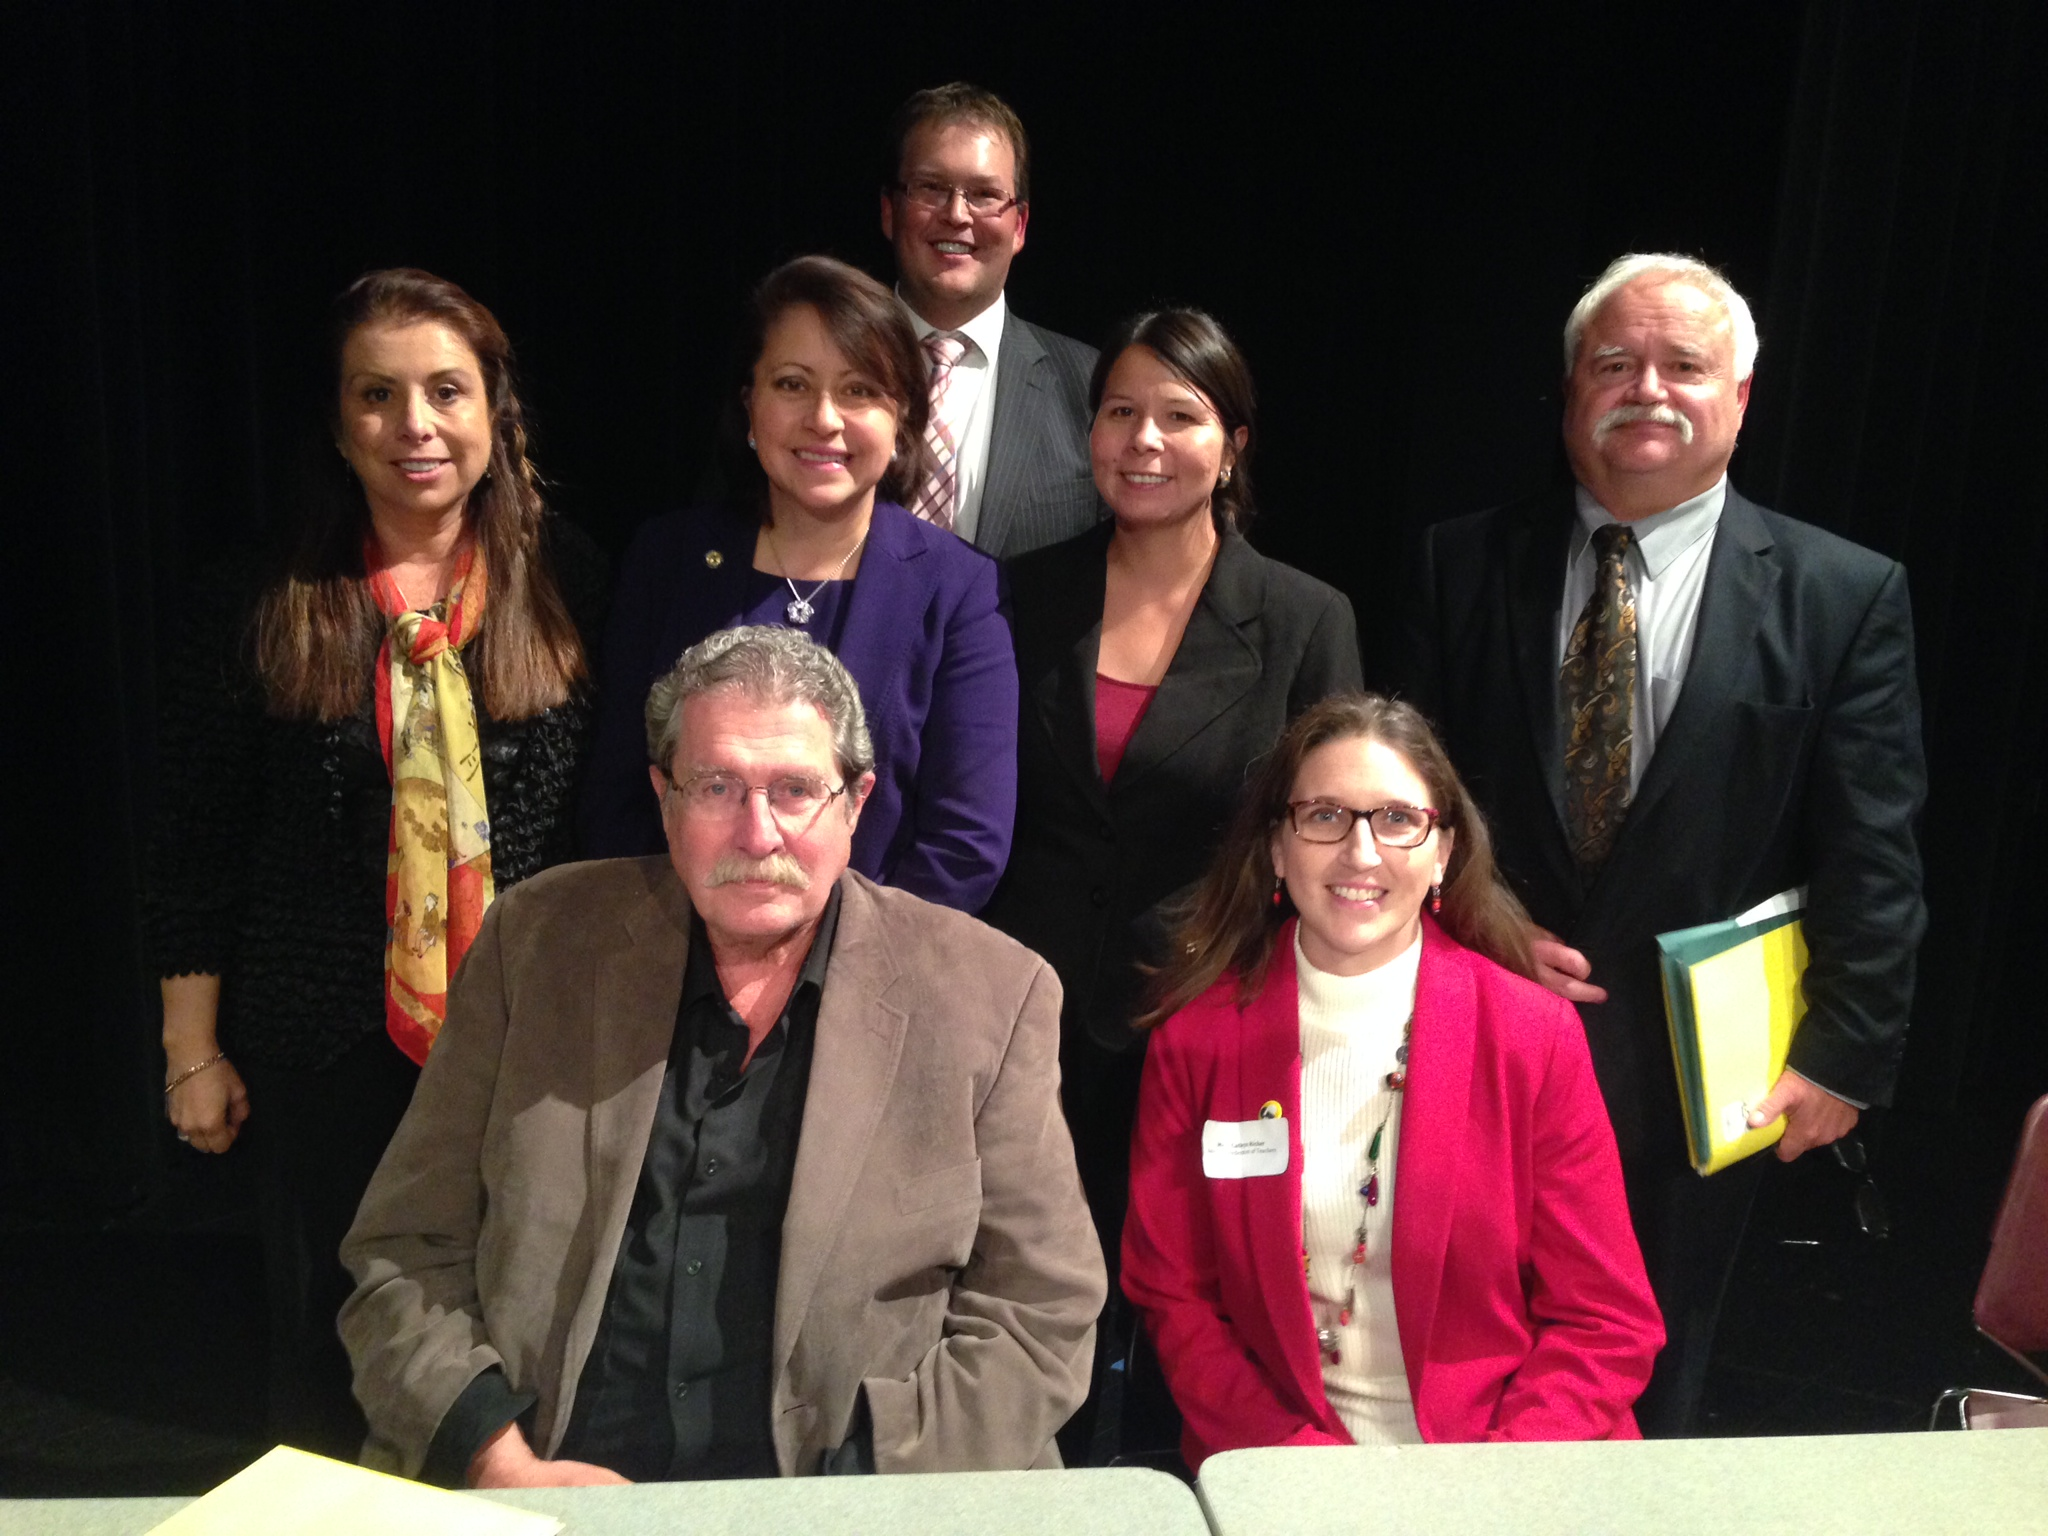 Front: Dr. David Beaulieu, Mary Cathryn Ricker 2nd Row: Supt. Valeria Silva, Sen. Patricia Torres Ray, Leslie Apple, Larry Anderson Back: Dennis Olson